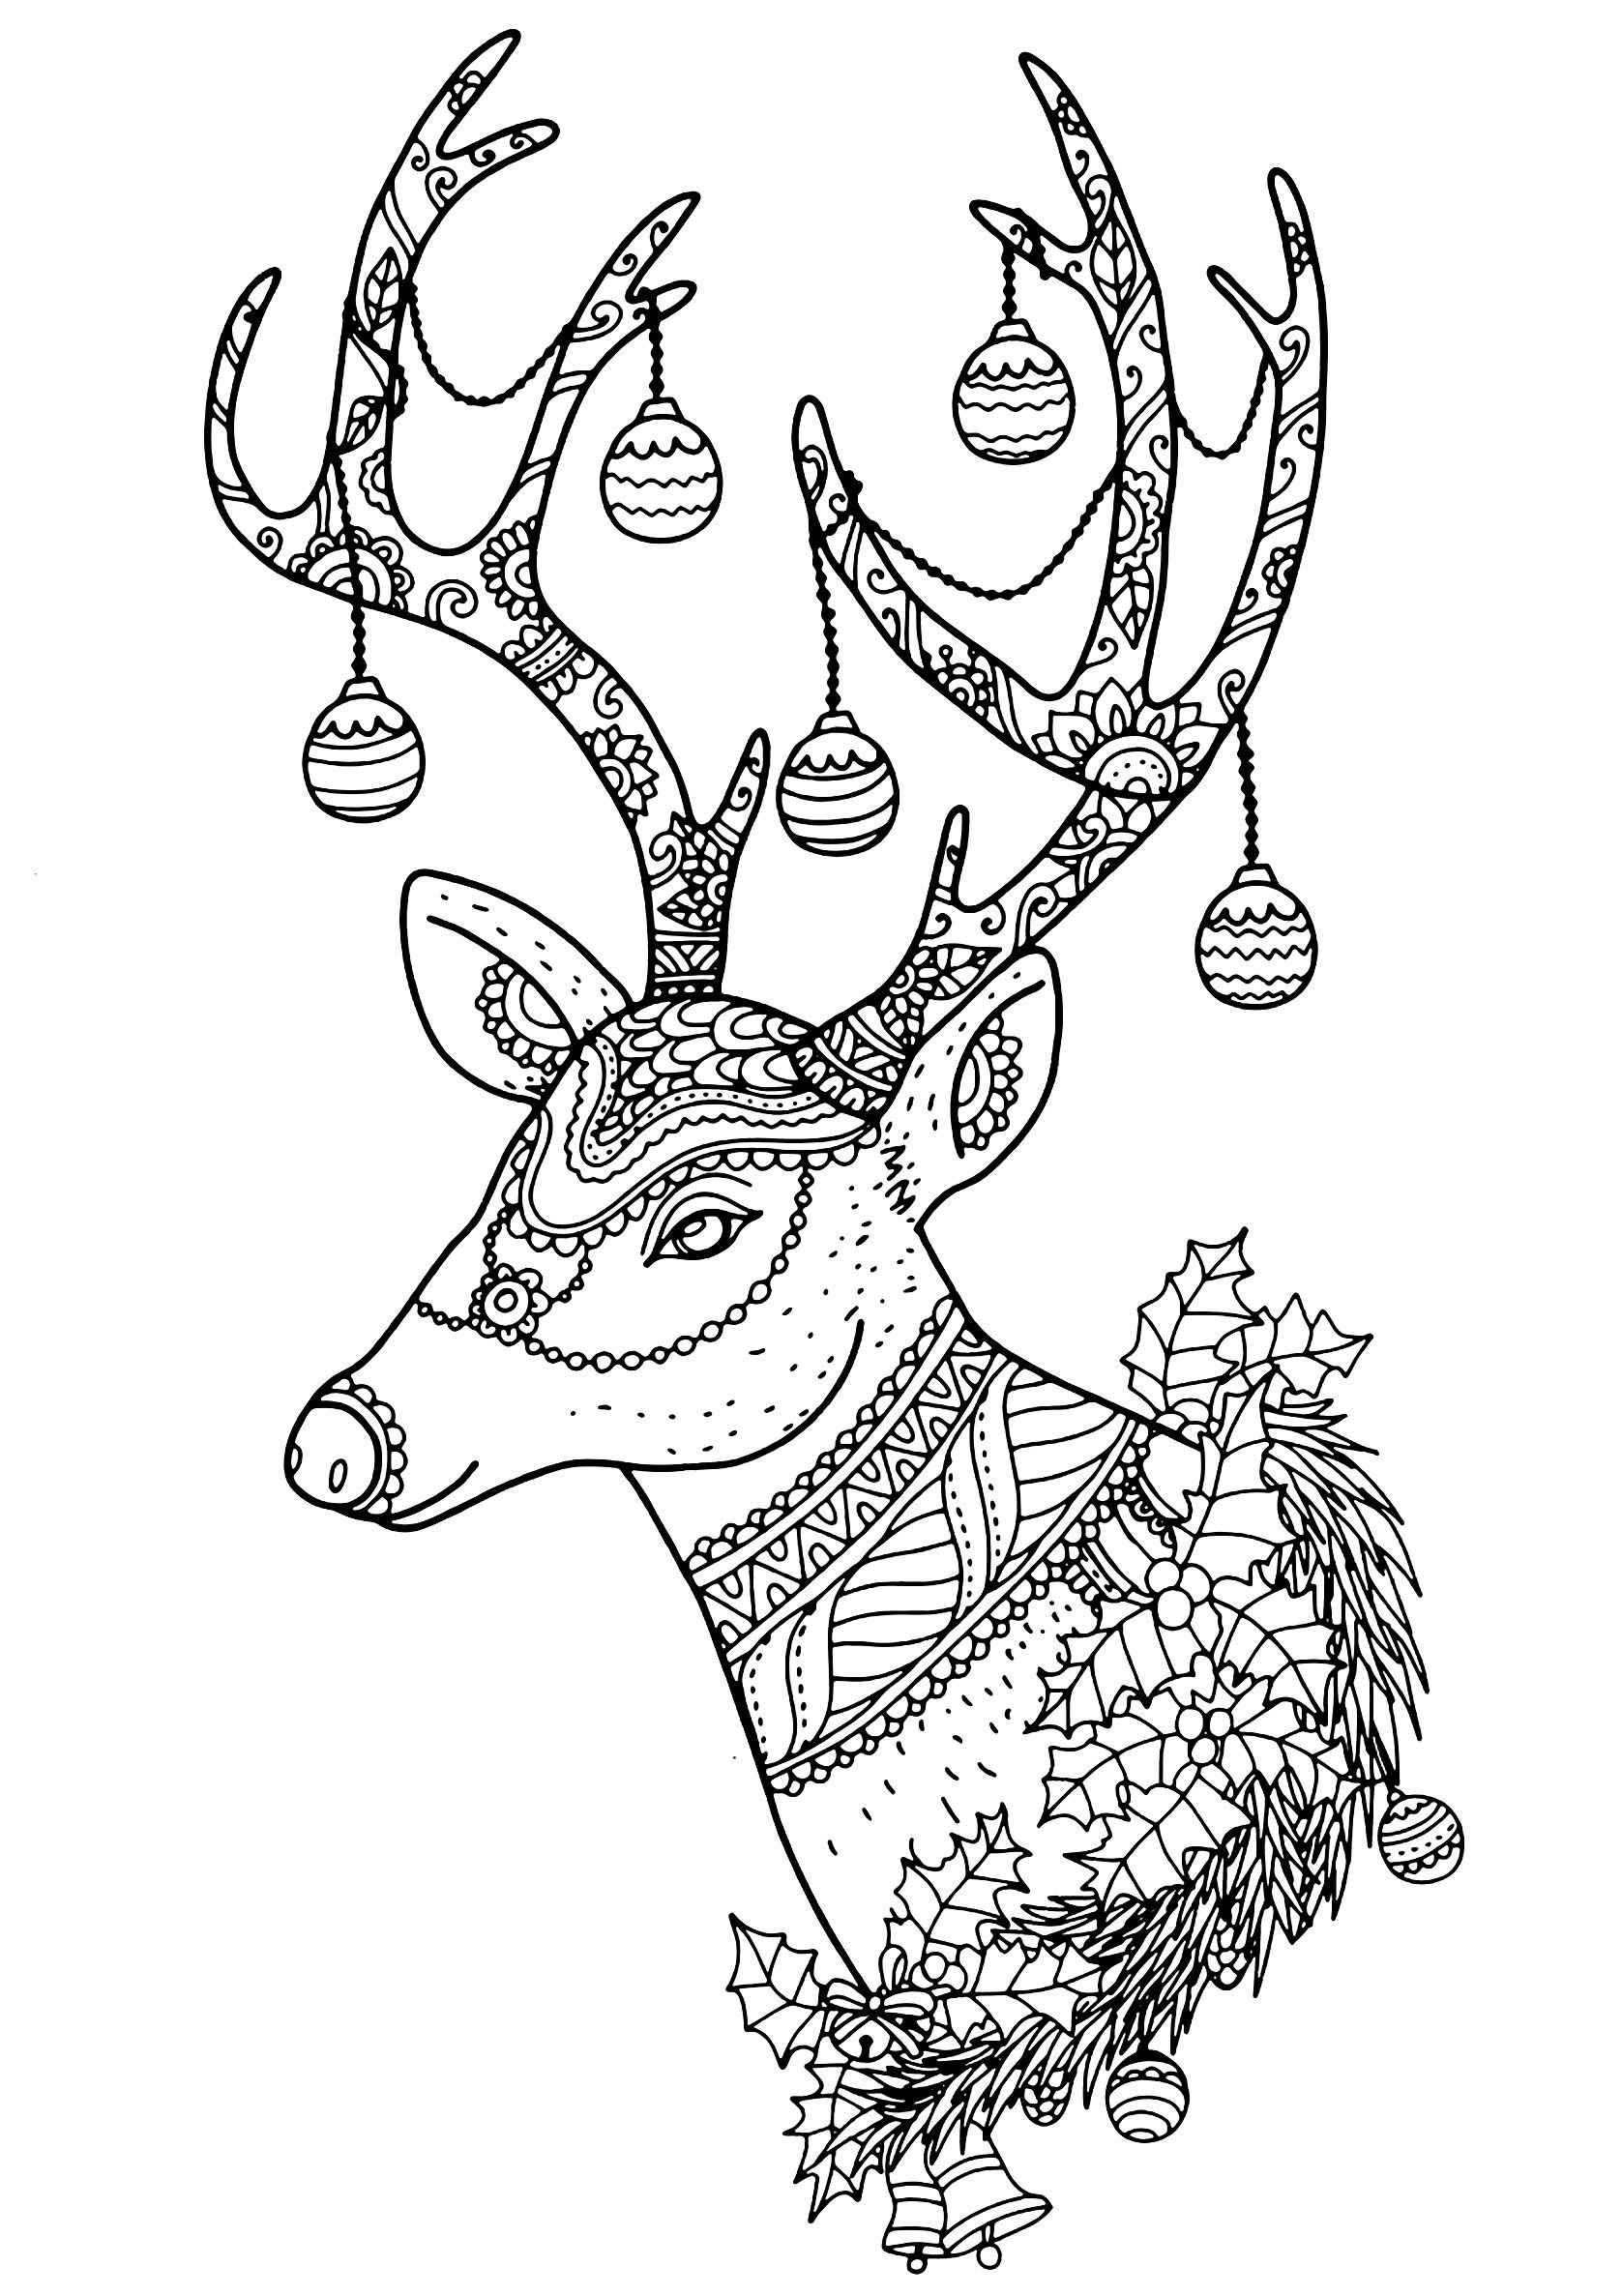 Pattern Reindeer Coloring Pages For Adults Christmas Coloring Pages Deer Coloring Pages Coloring Pages Winter